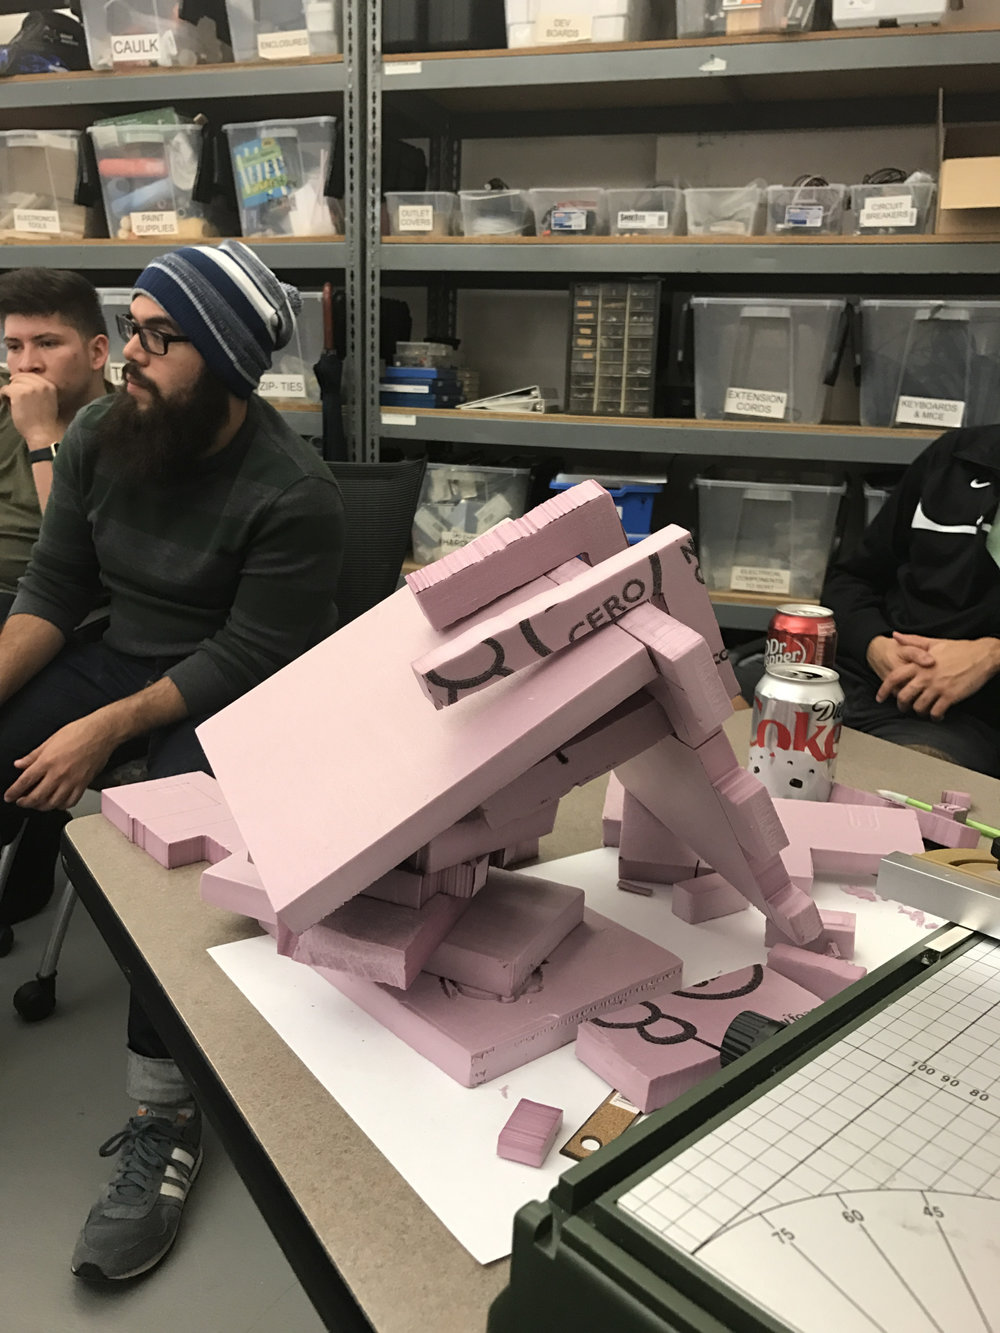 Building prototype connectors out of pink foam.